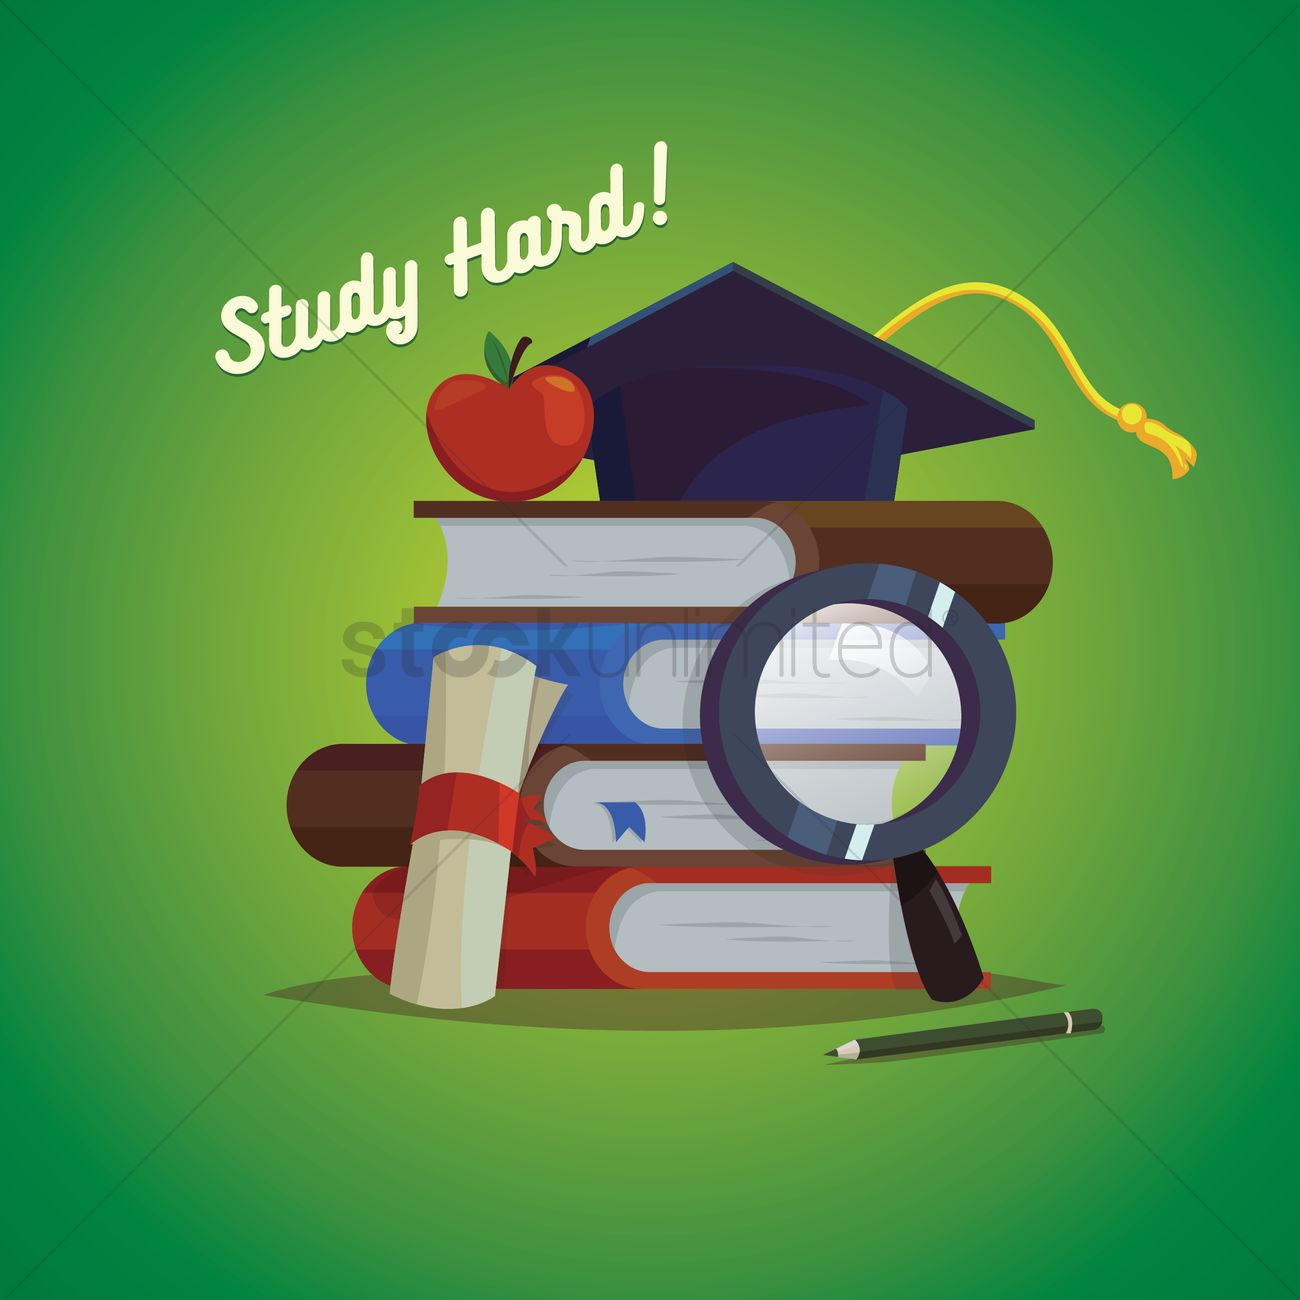 Poster design vector graphics - Study Hard Poster Design Vector Graphic